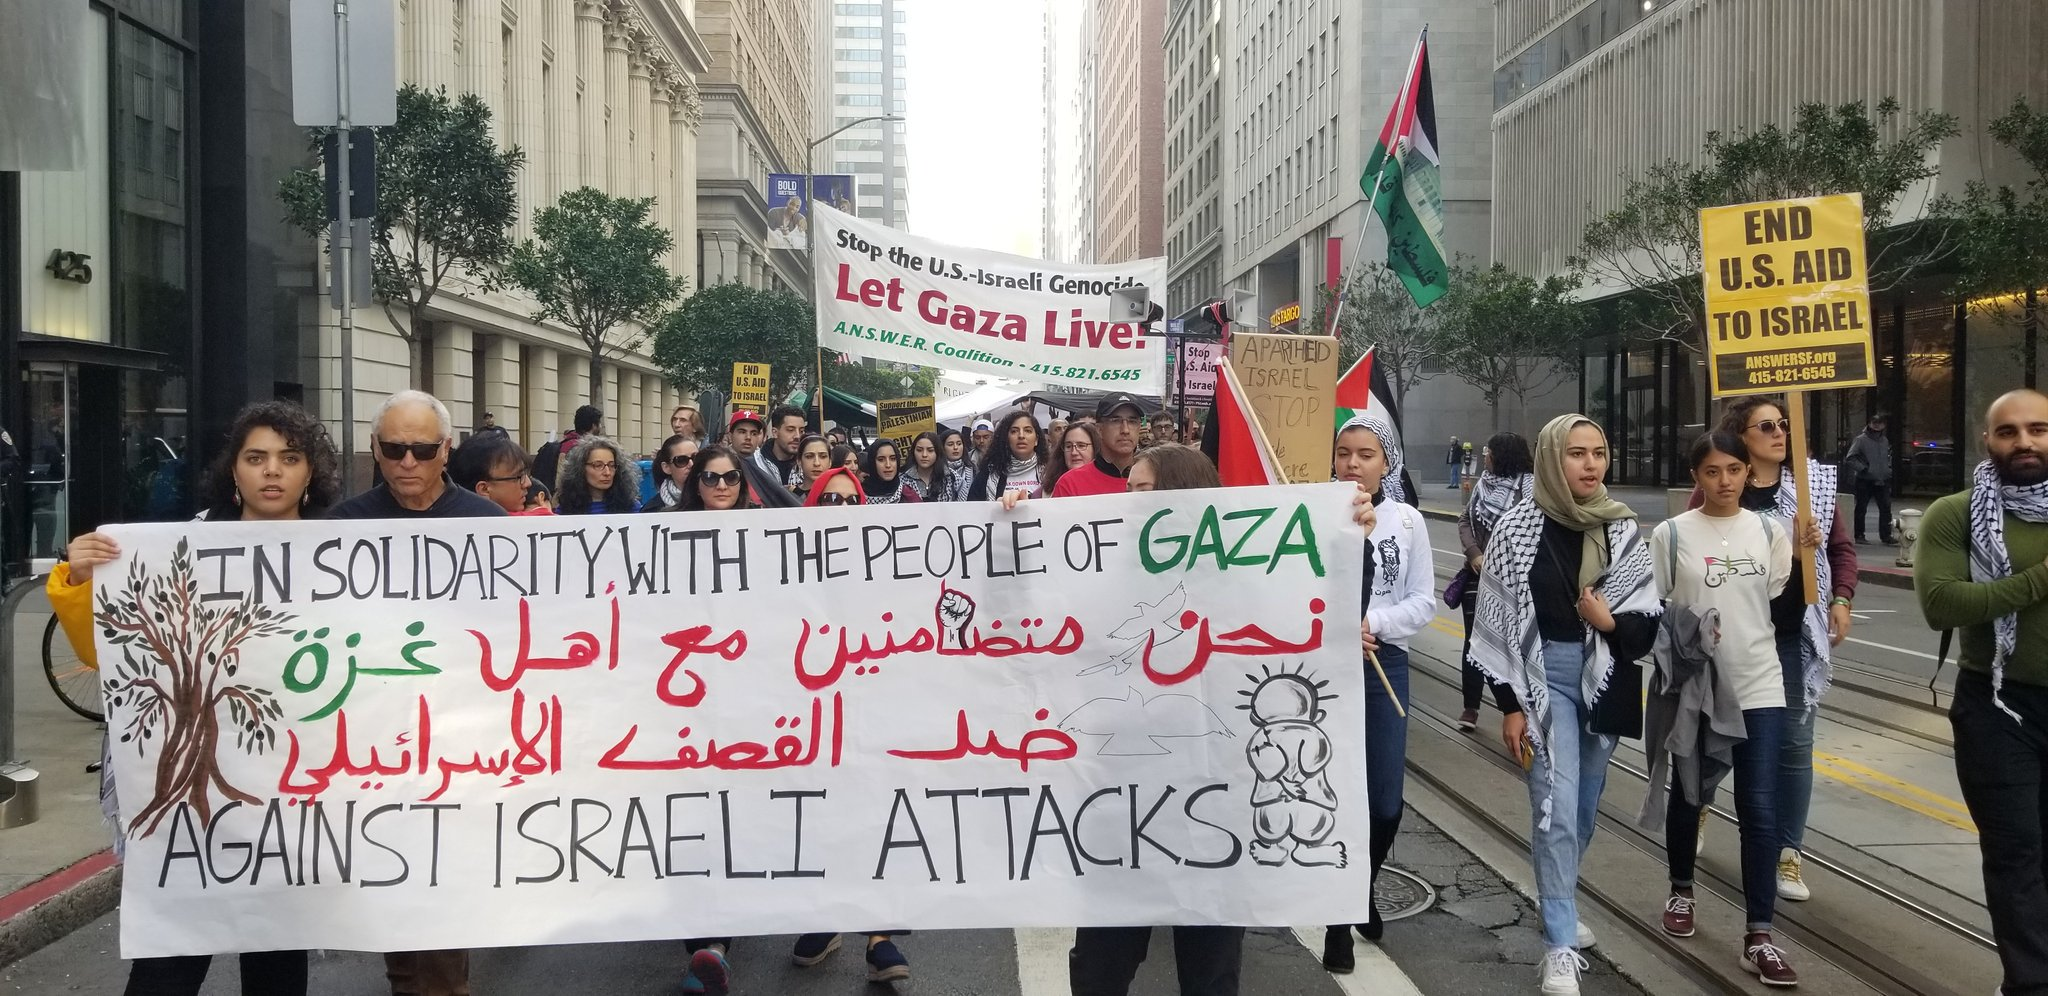 San Francisco rally shows solidarity with the people of Gaza